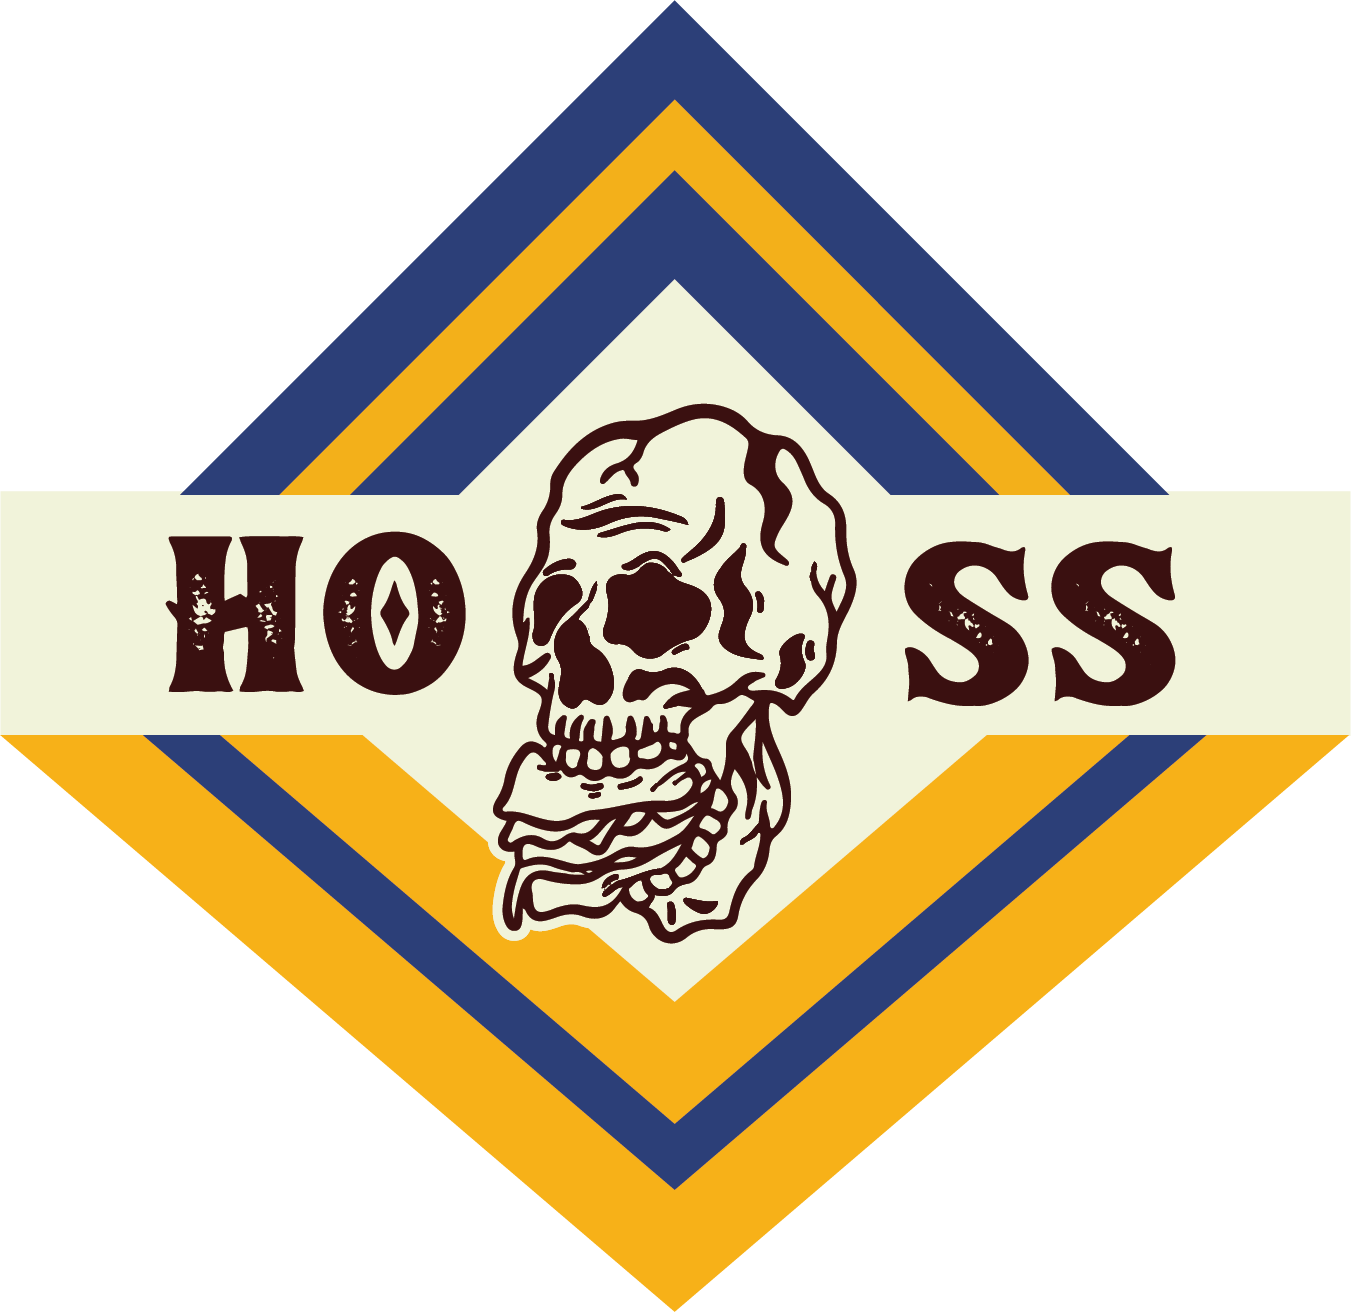 Hoss Bar and Grill